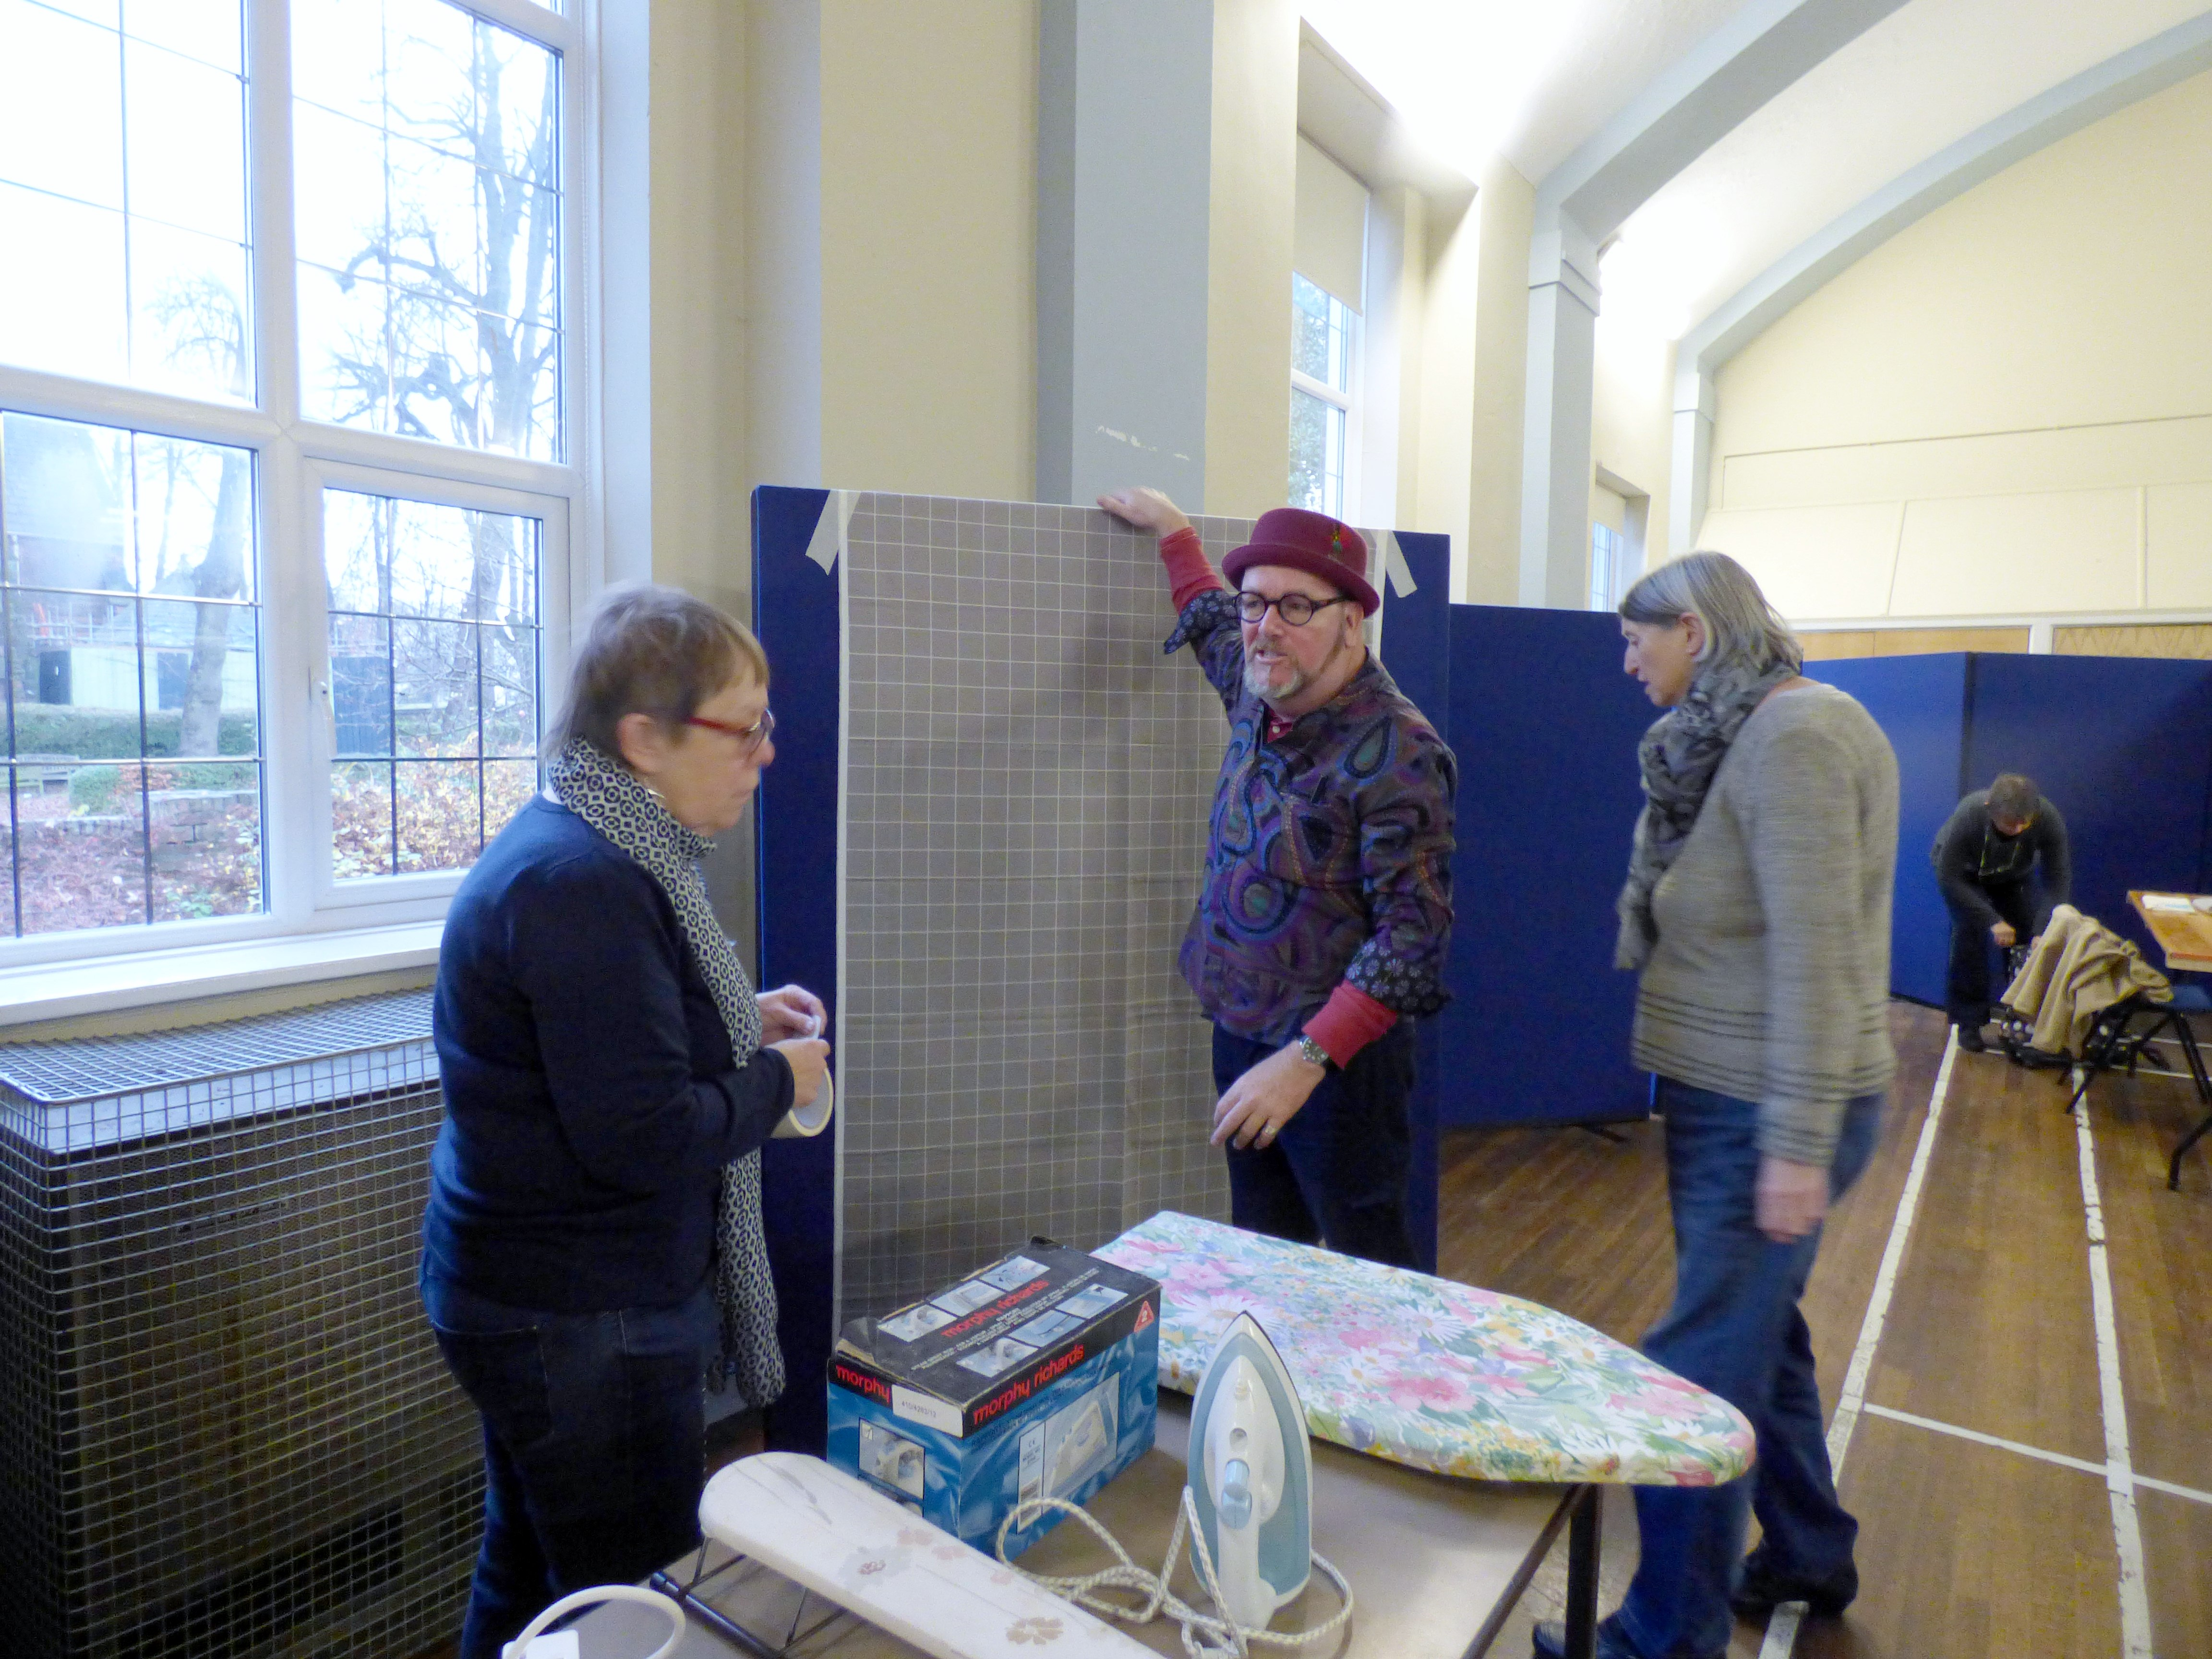 Brandon Mably is showing us how to attach the flannel to the design boards- Kaffe Fassett workshop, All Hallows, Dec 2016